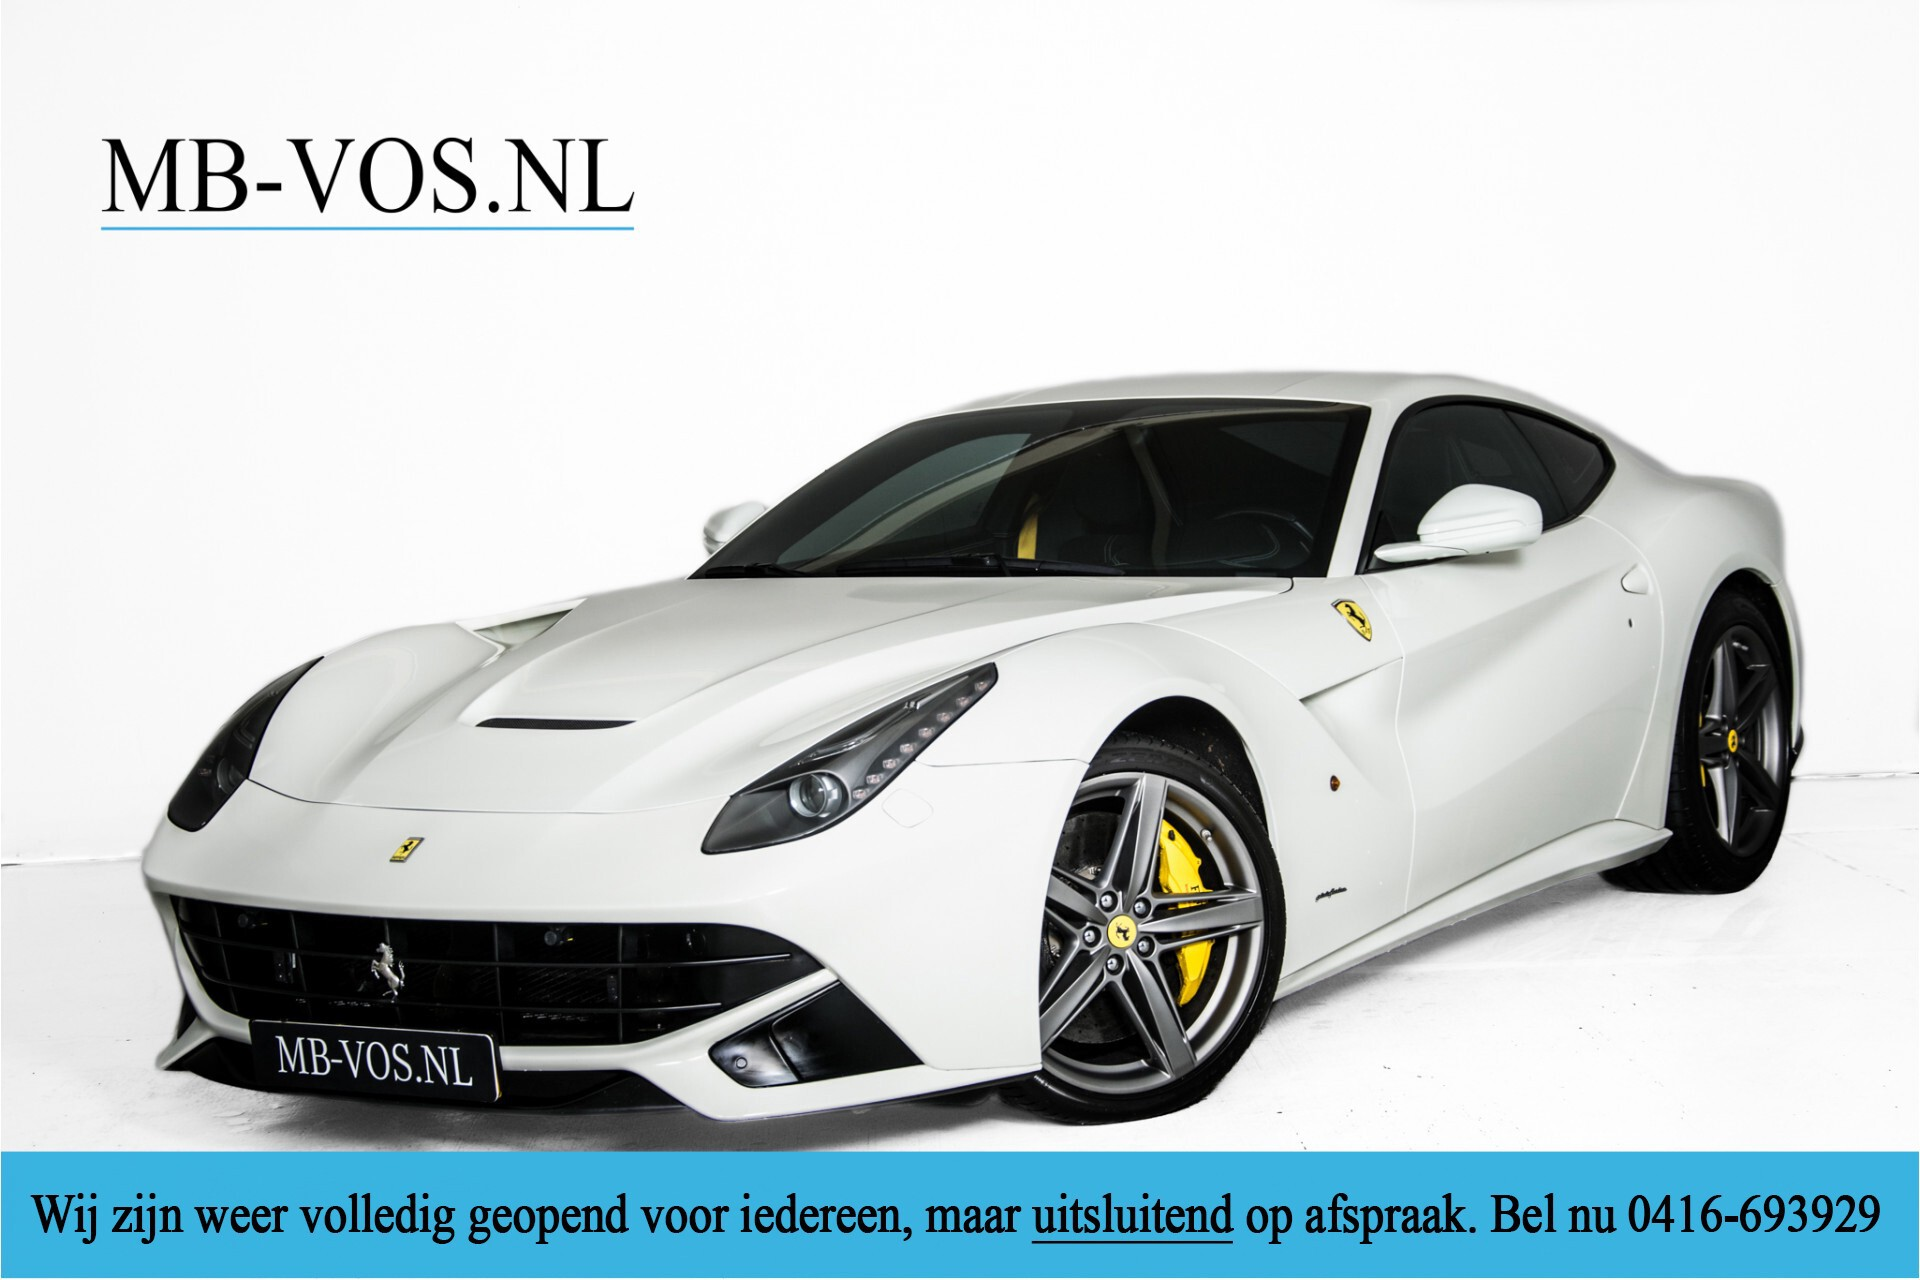 Ferrari F12 6.3 Berlinetta Capristo/Carbonseats/Led/Passenger Display Aut7 Foto 1